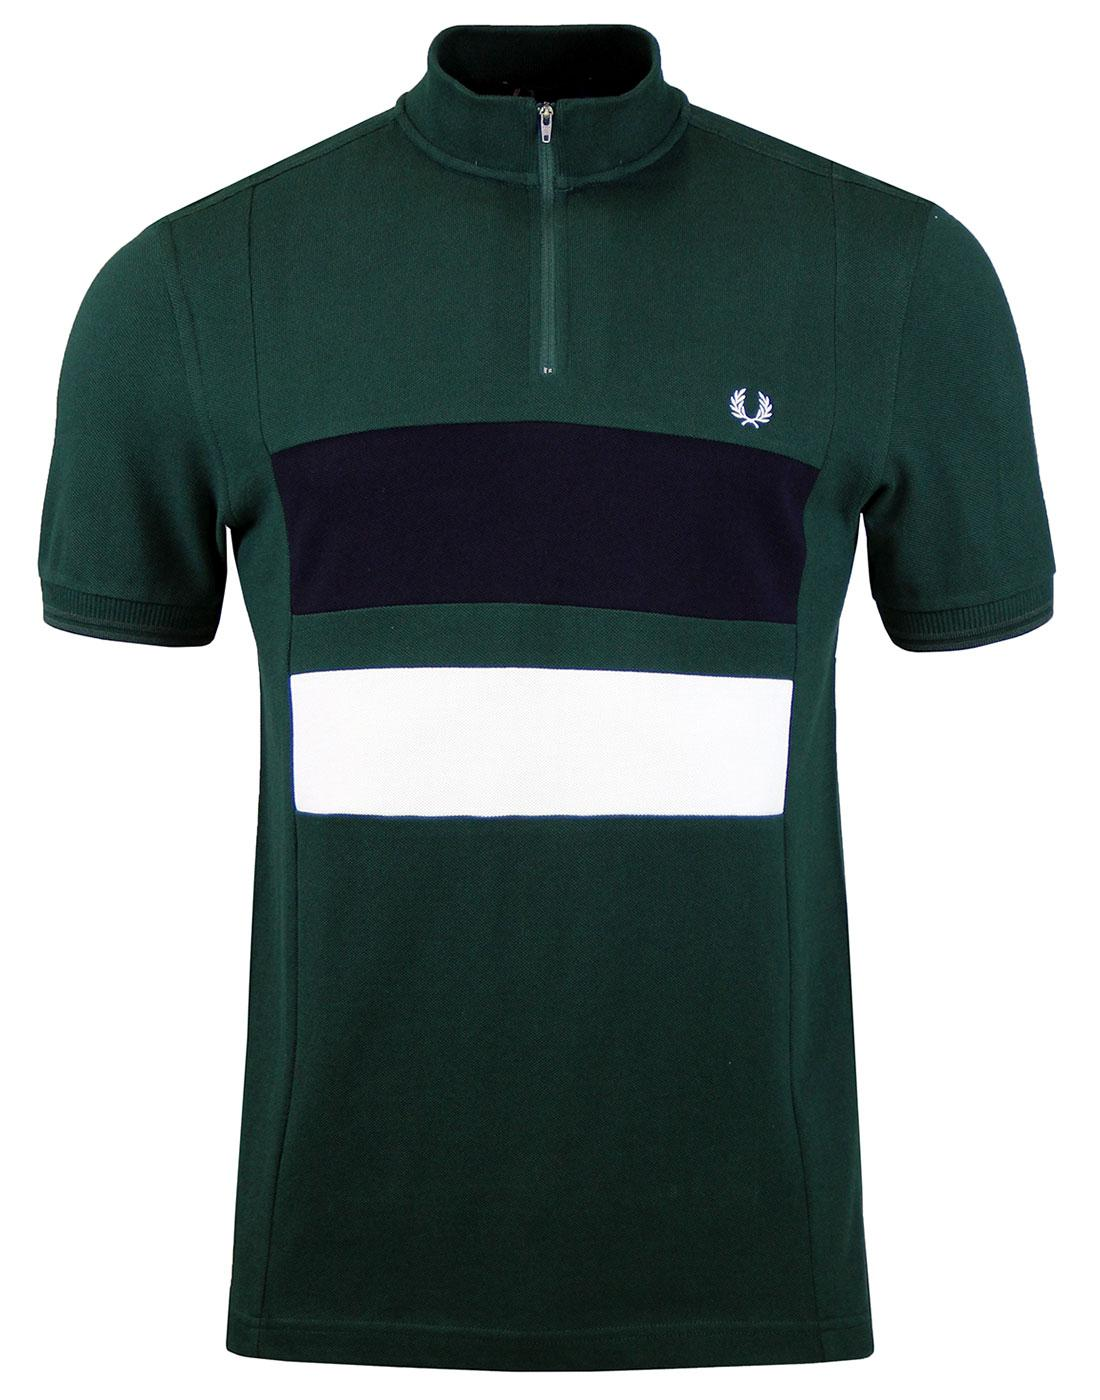 FRED PERRY M2587 Zip Pique Cycling Top Dark Ivy